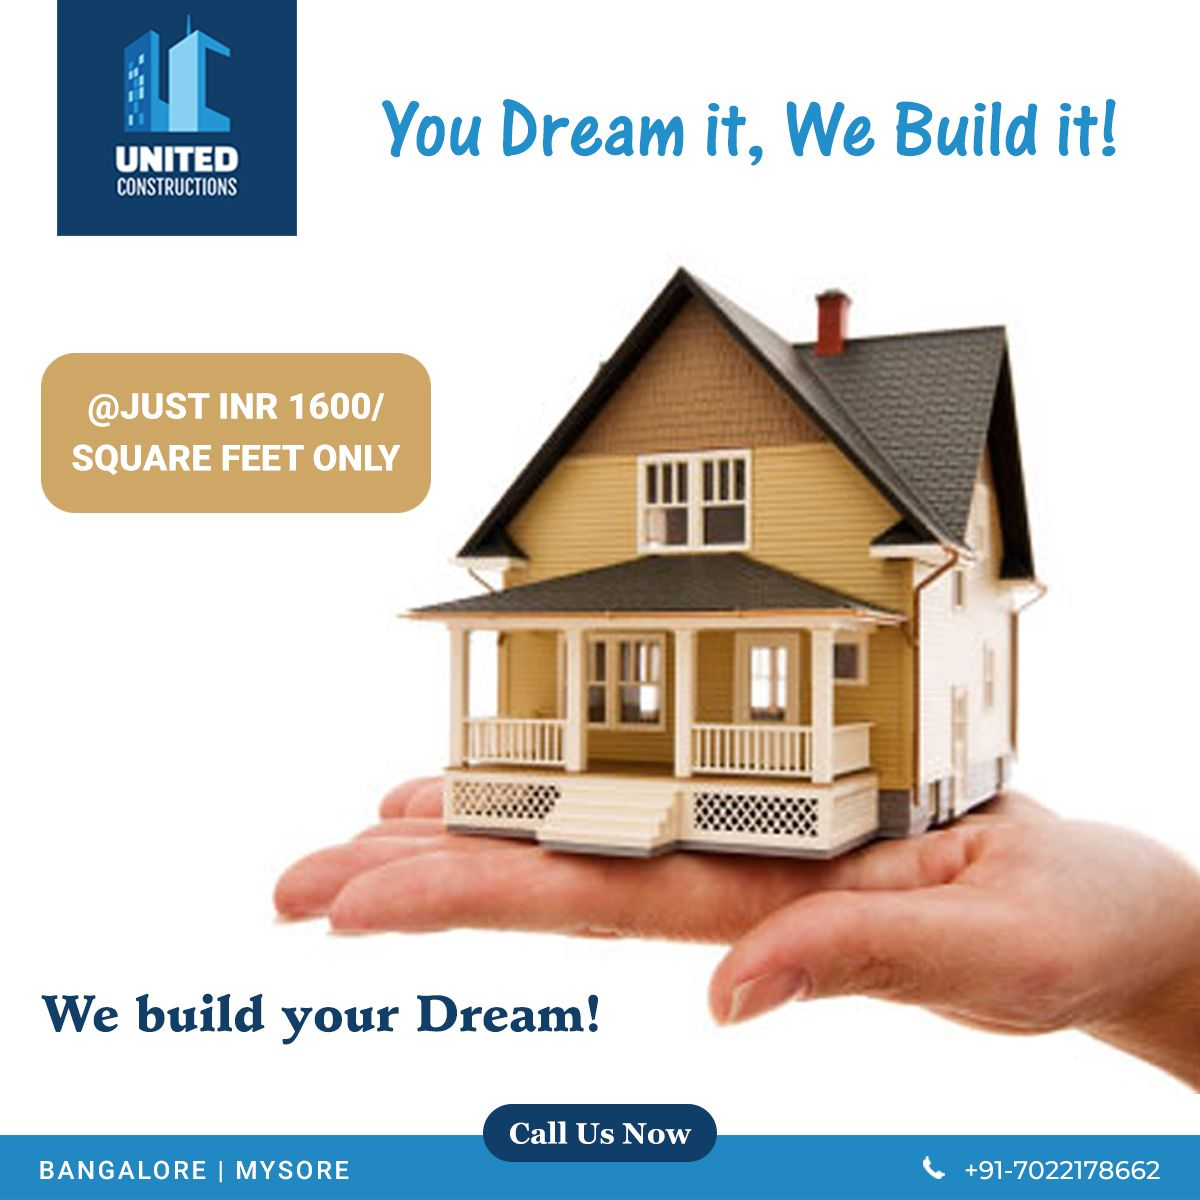 United Constructions Builds Your Dream Home When You Dream For A Home In Bengaluru Mysuru And Find It Difficult To The Unit Build Your Dream Home Construction